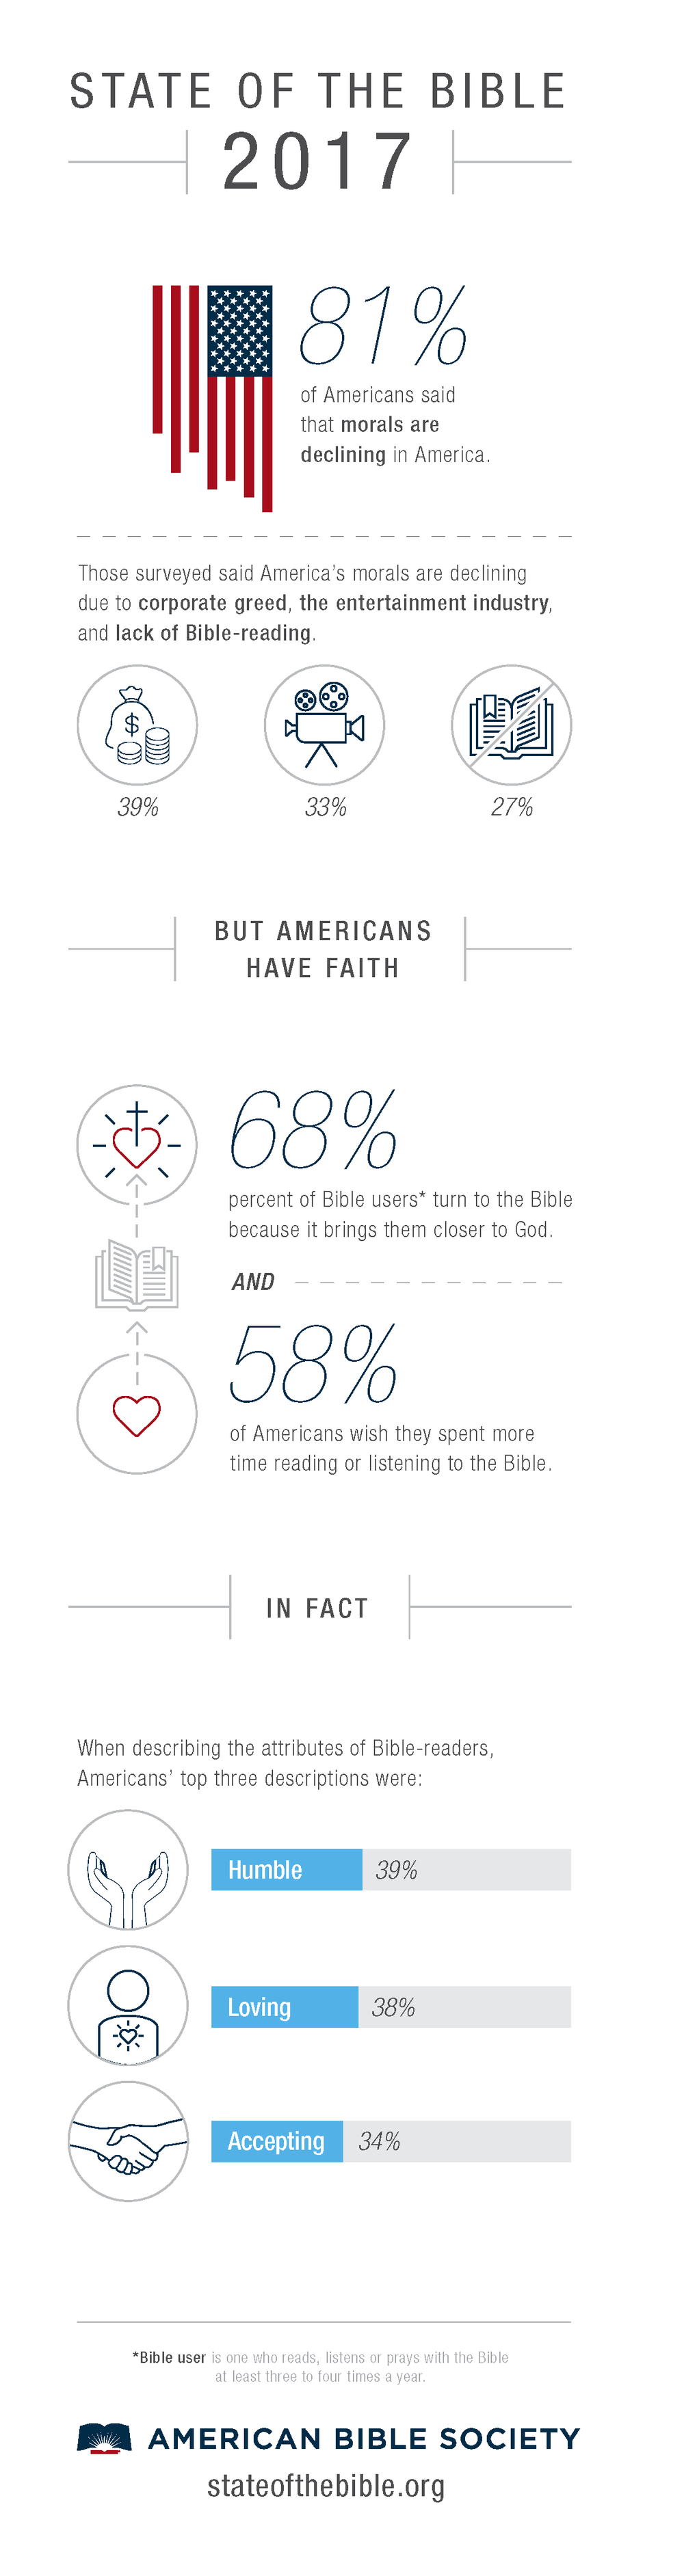 bible-reading-and-use-in-America